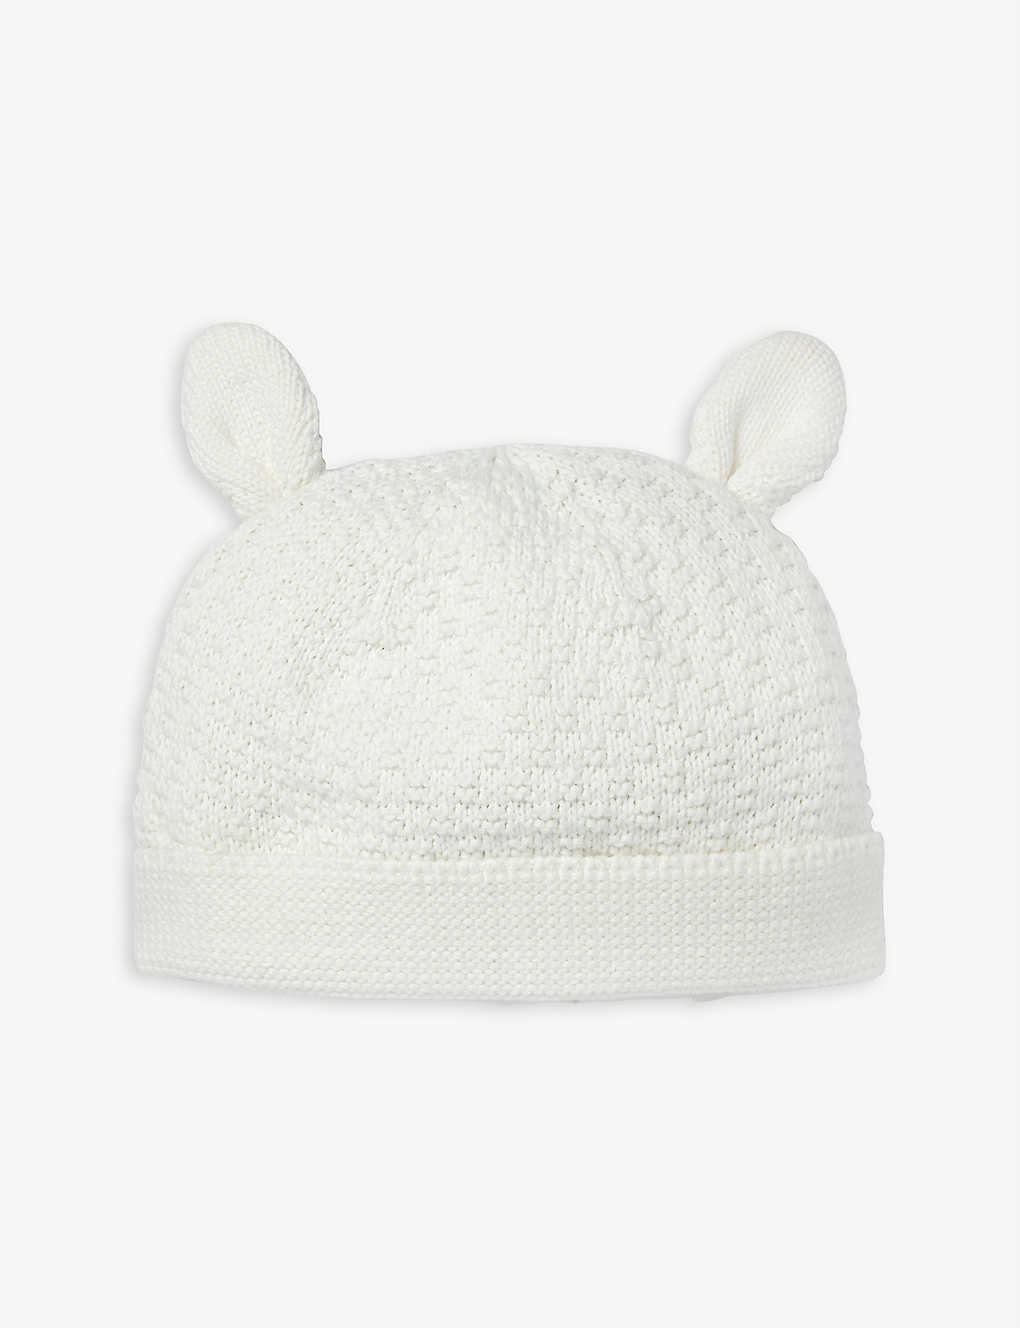 THE LITTLE WHITE COMPANY: Lamb knitted cotton hat 0-12 months